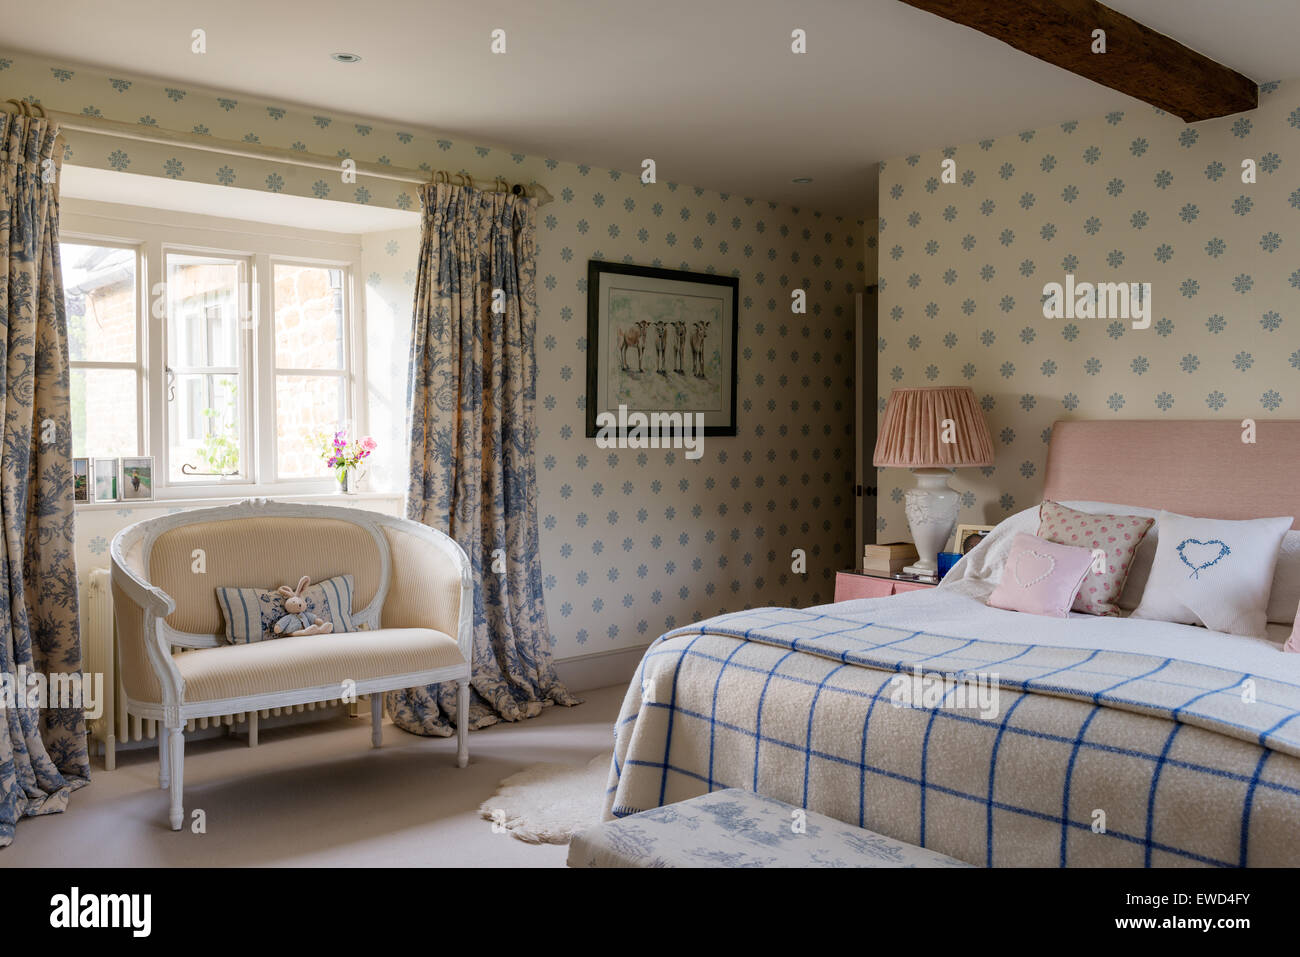 Patterned Wallpaper For Bedrooms Kate Forman French Style Fabrics In Guest Bedroom With Patterned